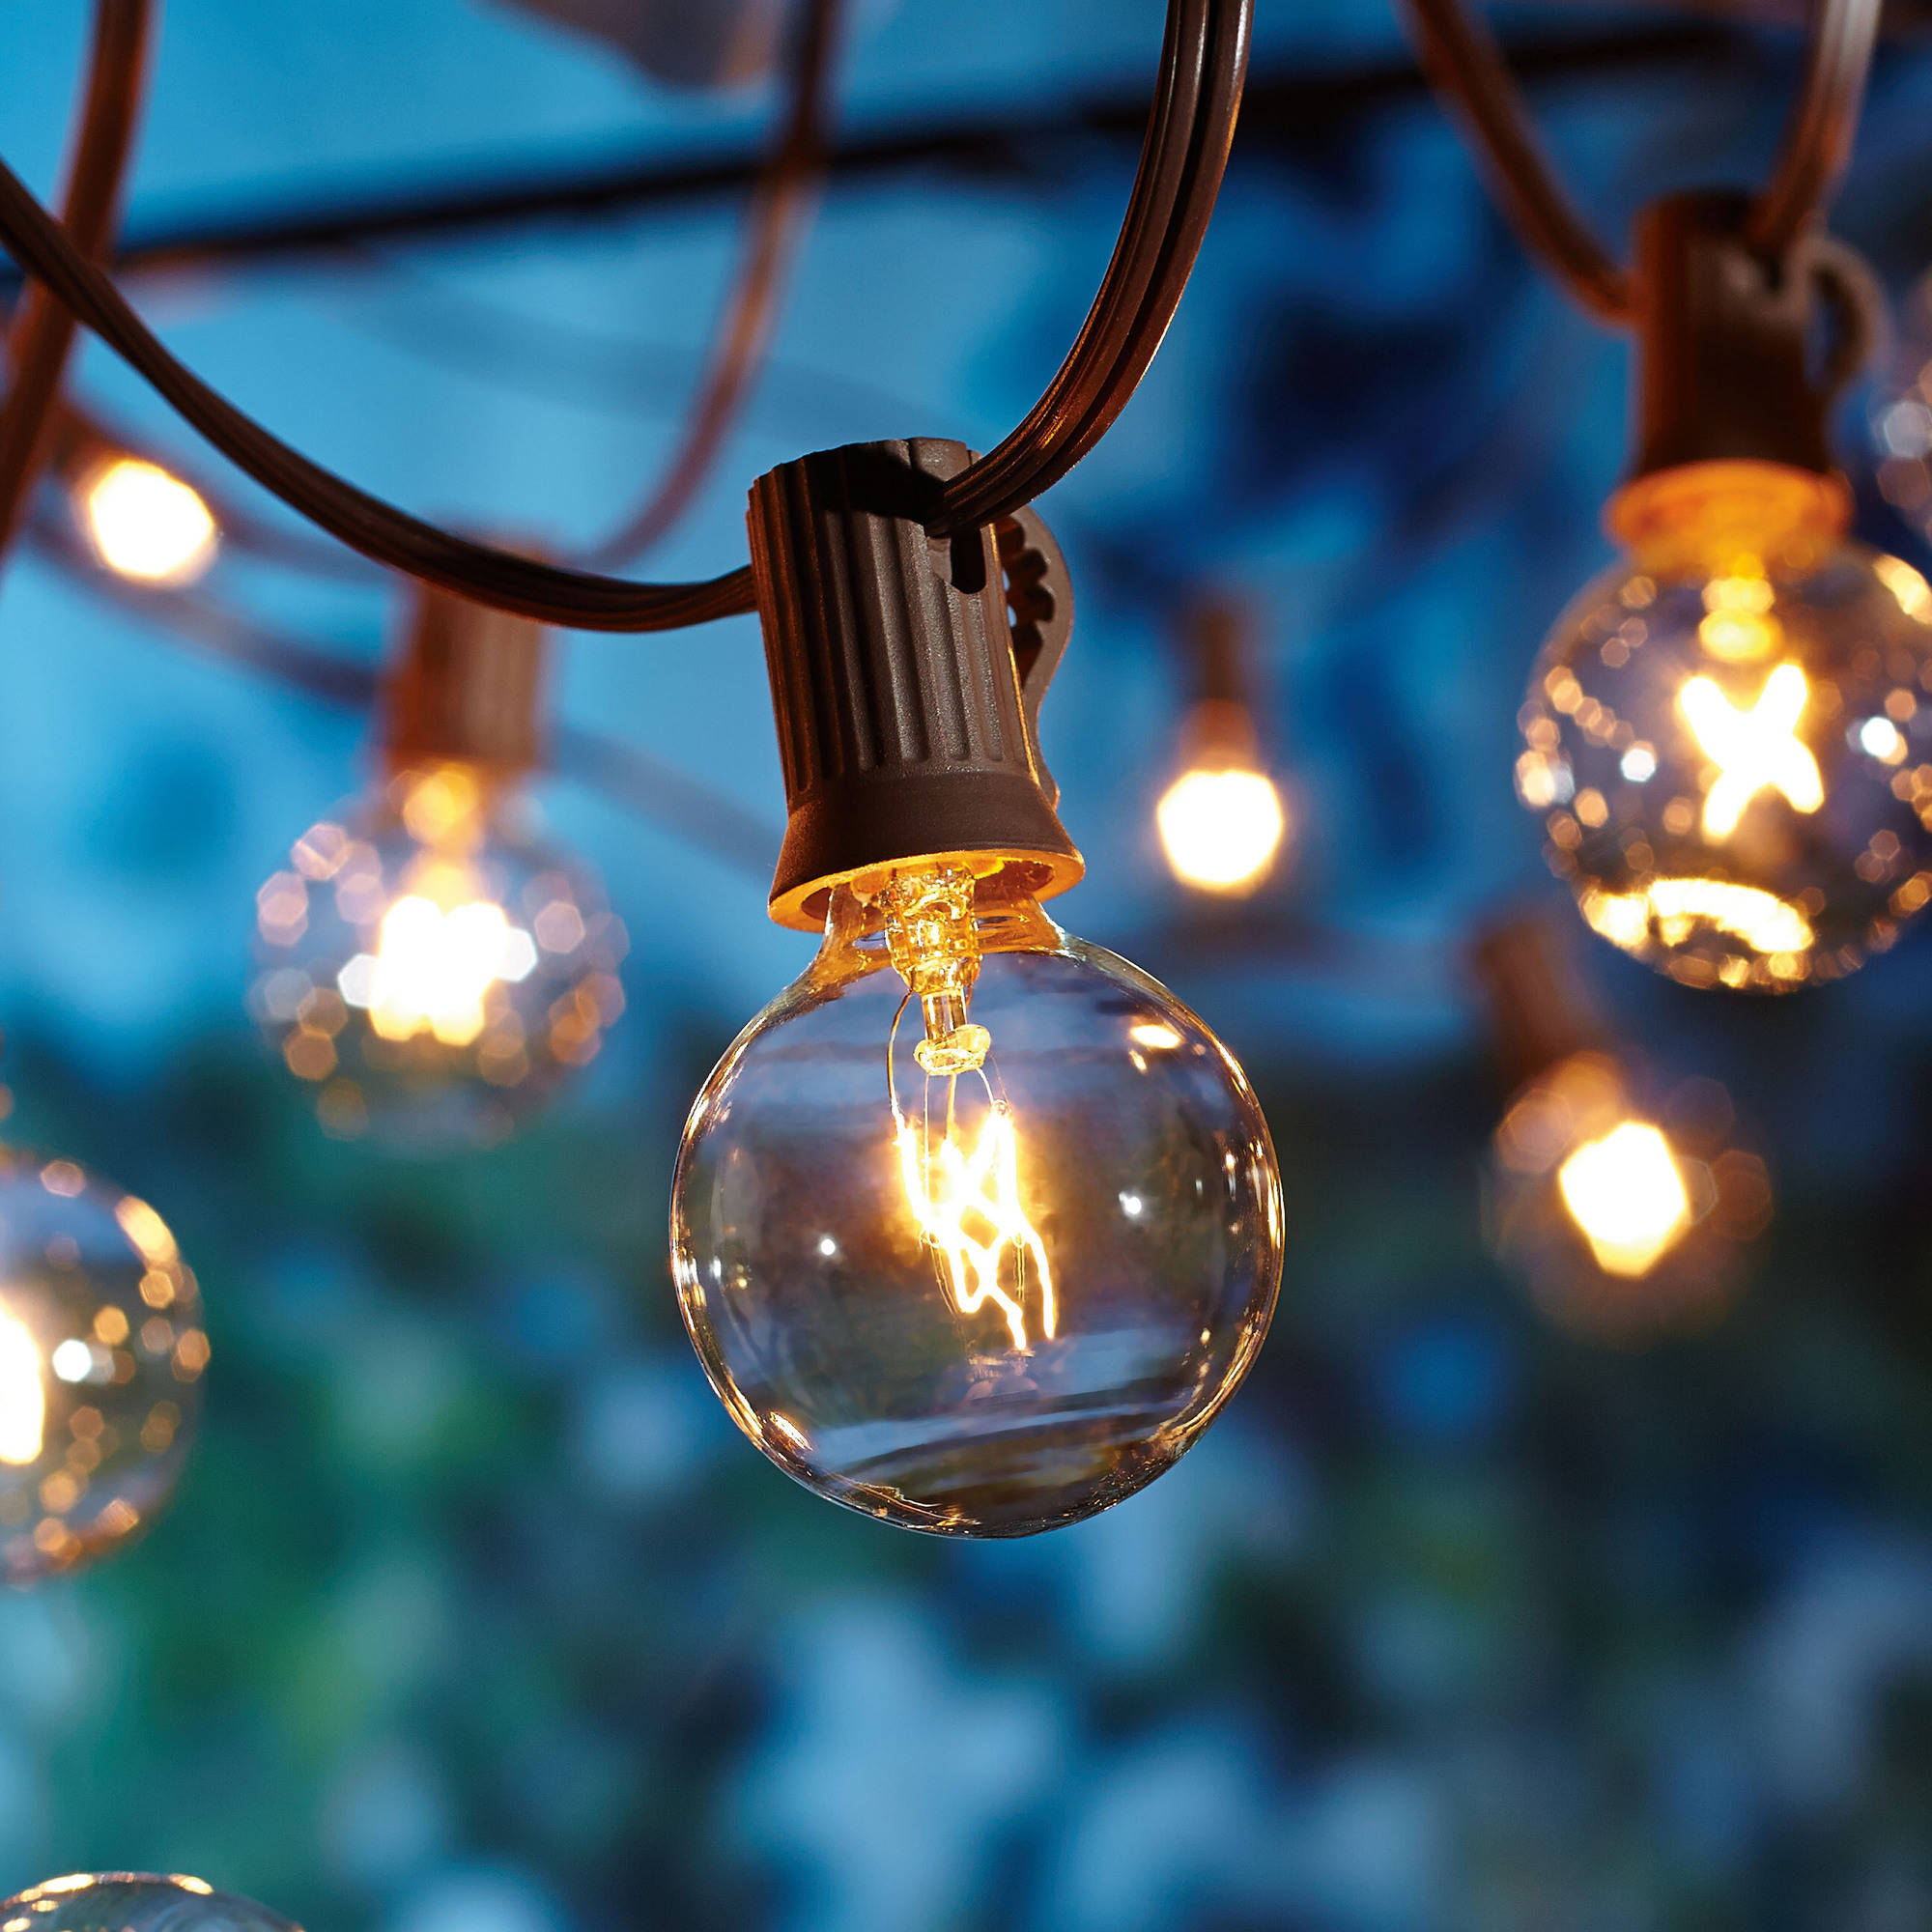 String Lights Houses : Better Homes and Gardens 20-Count Clear Glass Globe String Lights by SUN EAST ELECTRIC CO., LTD.